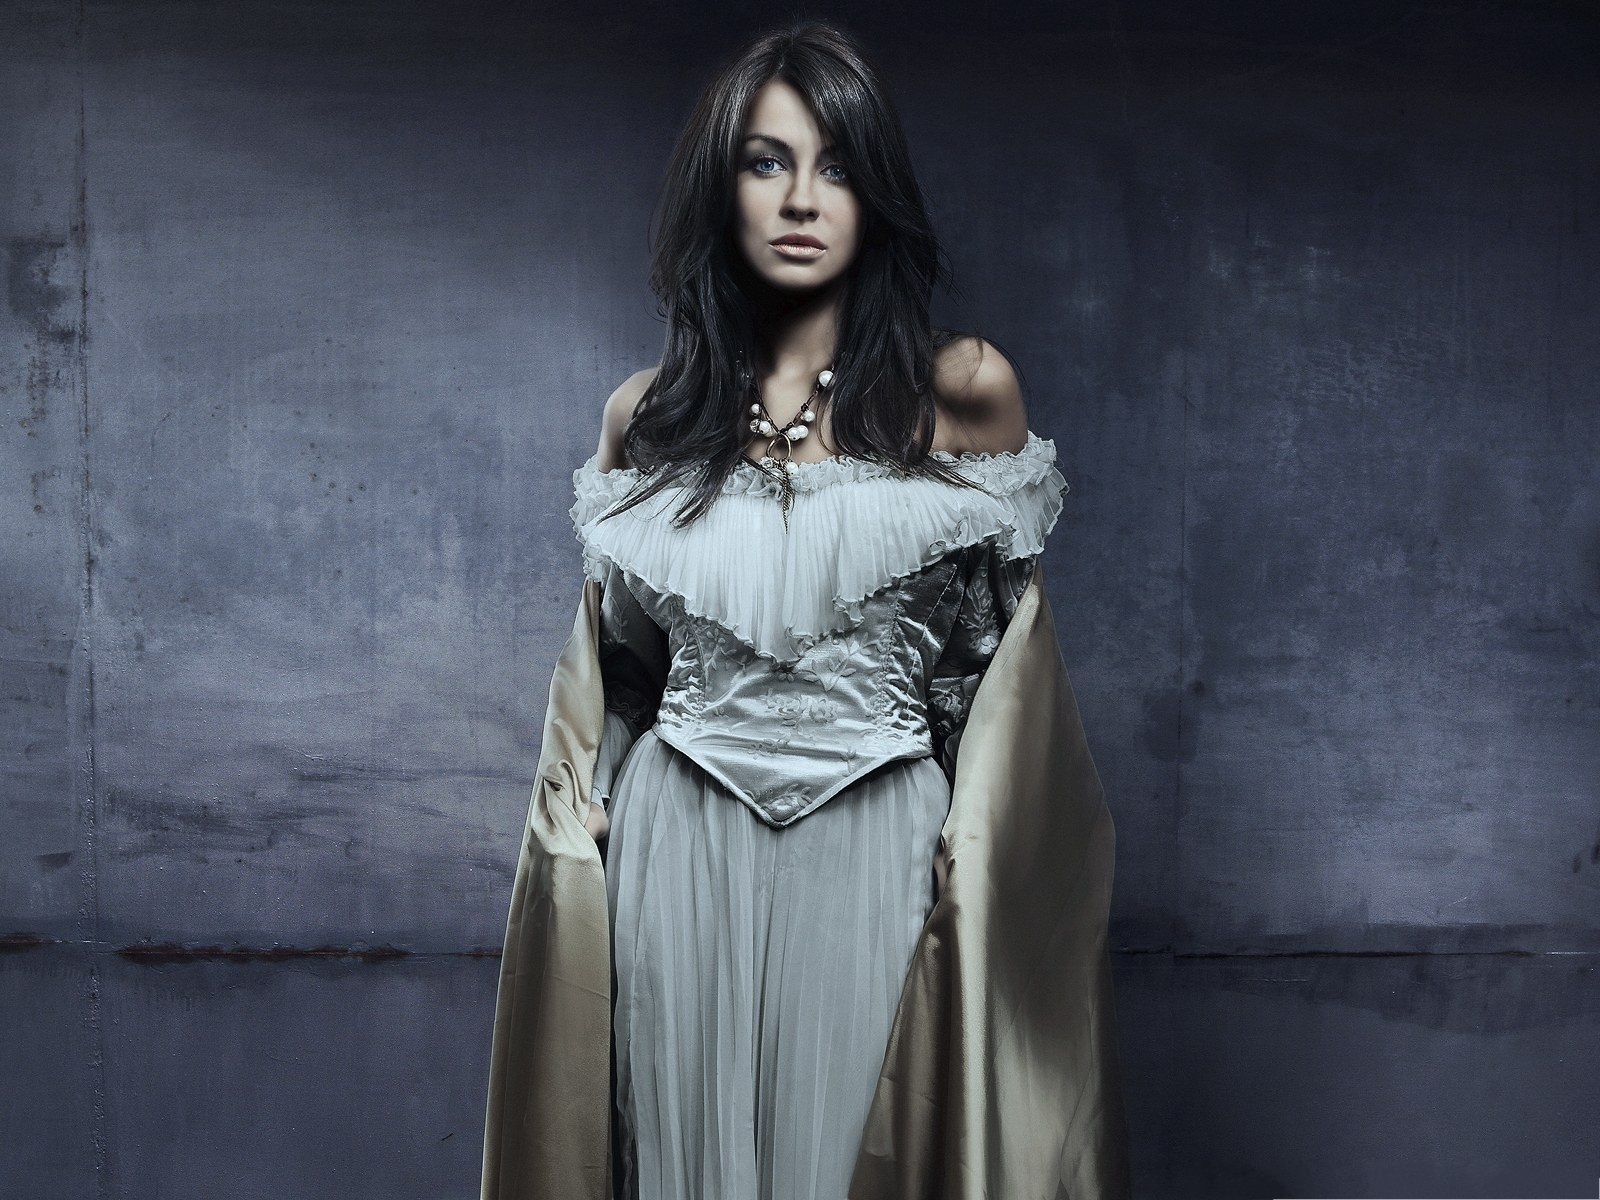 click to free download the wallpaper--Free Girls Wallpaper, Classic Woman in White Dress, Black Curly Hair 1600X1200 free wallpaper download